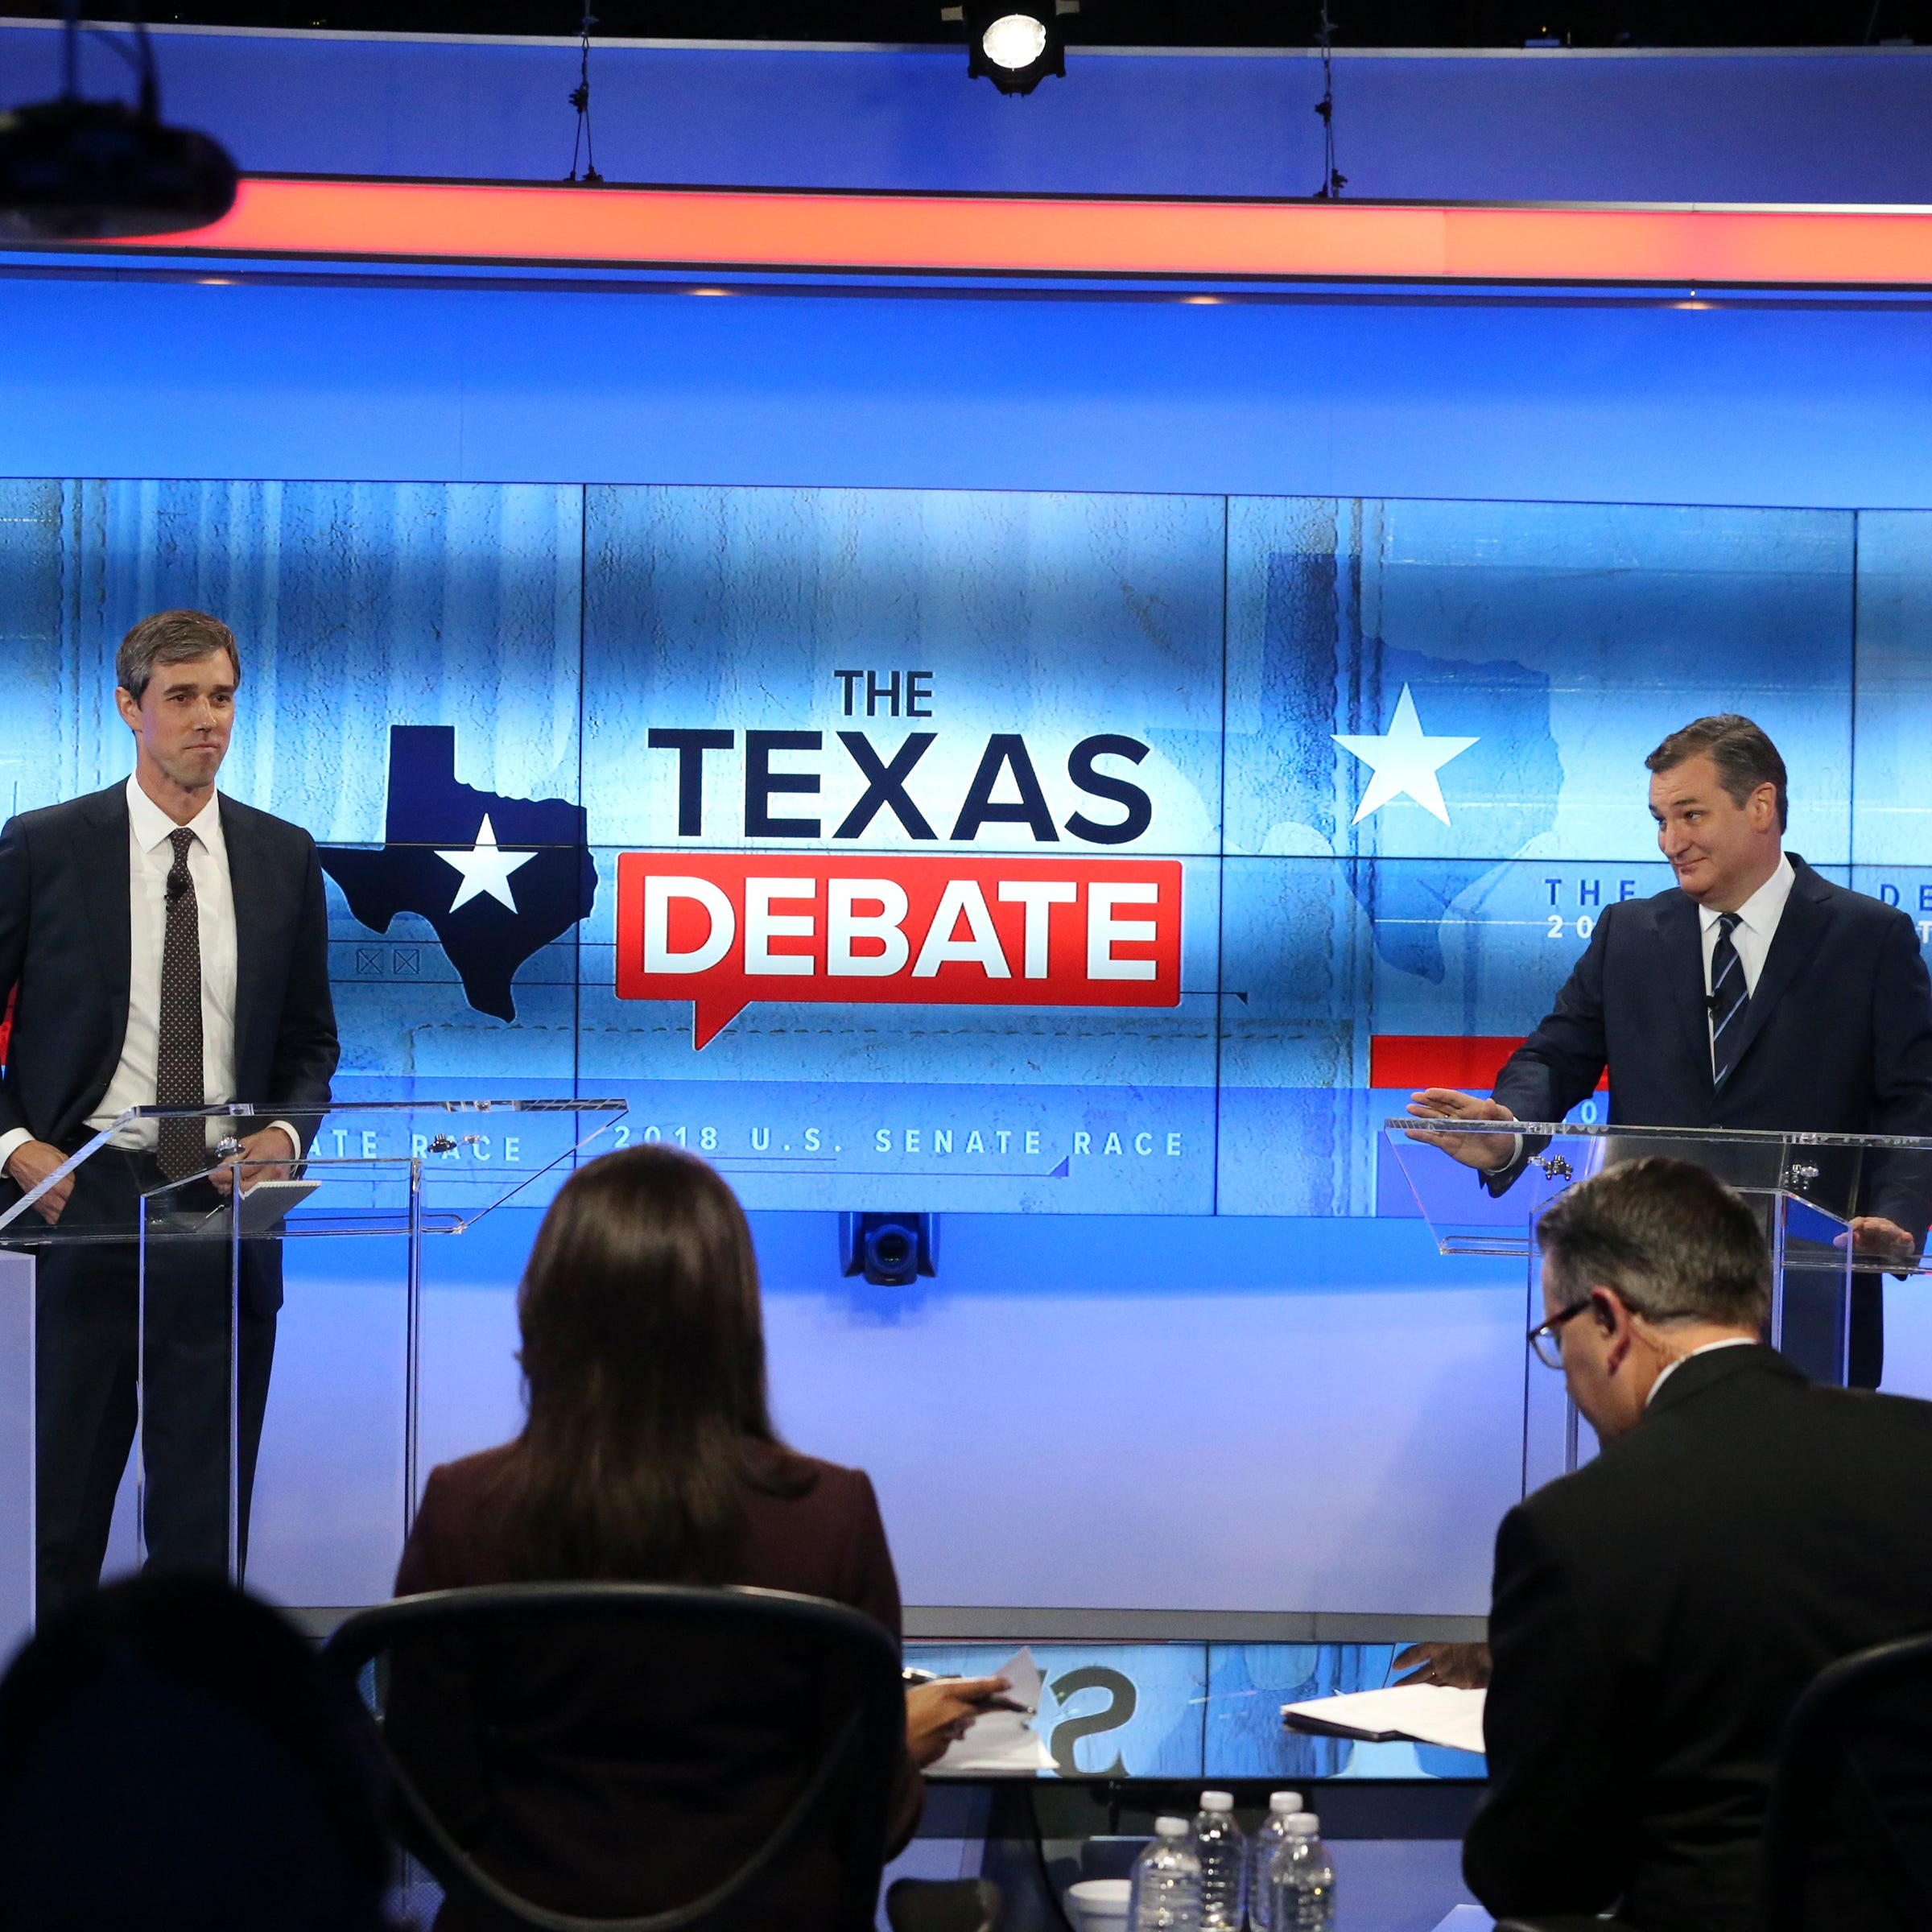 Beto-Cruz Debate: What President Trump, Ellen and others are saying online about the debate